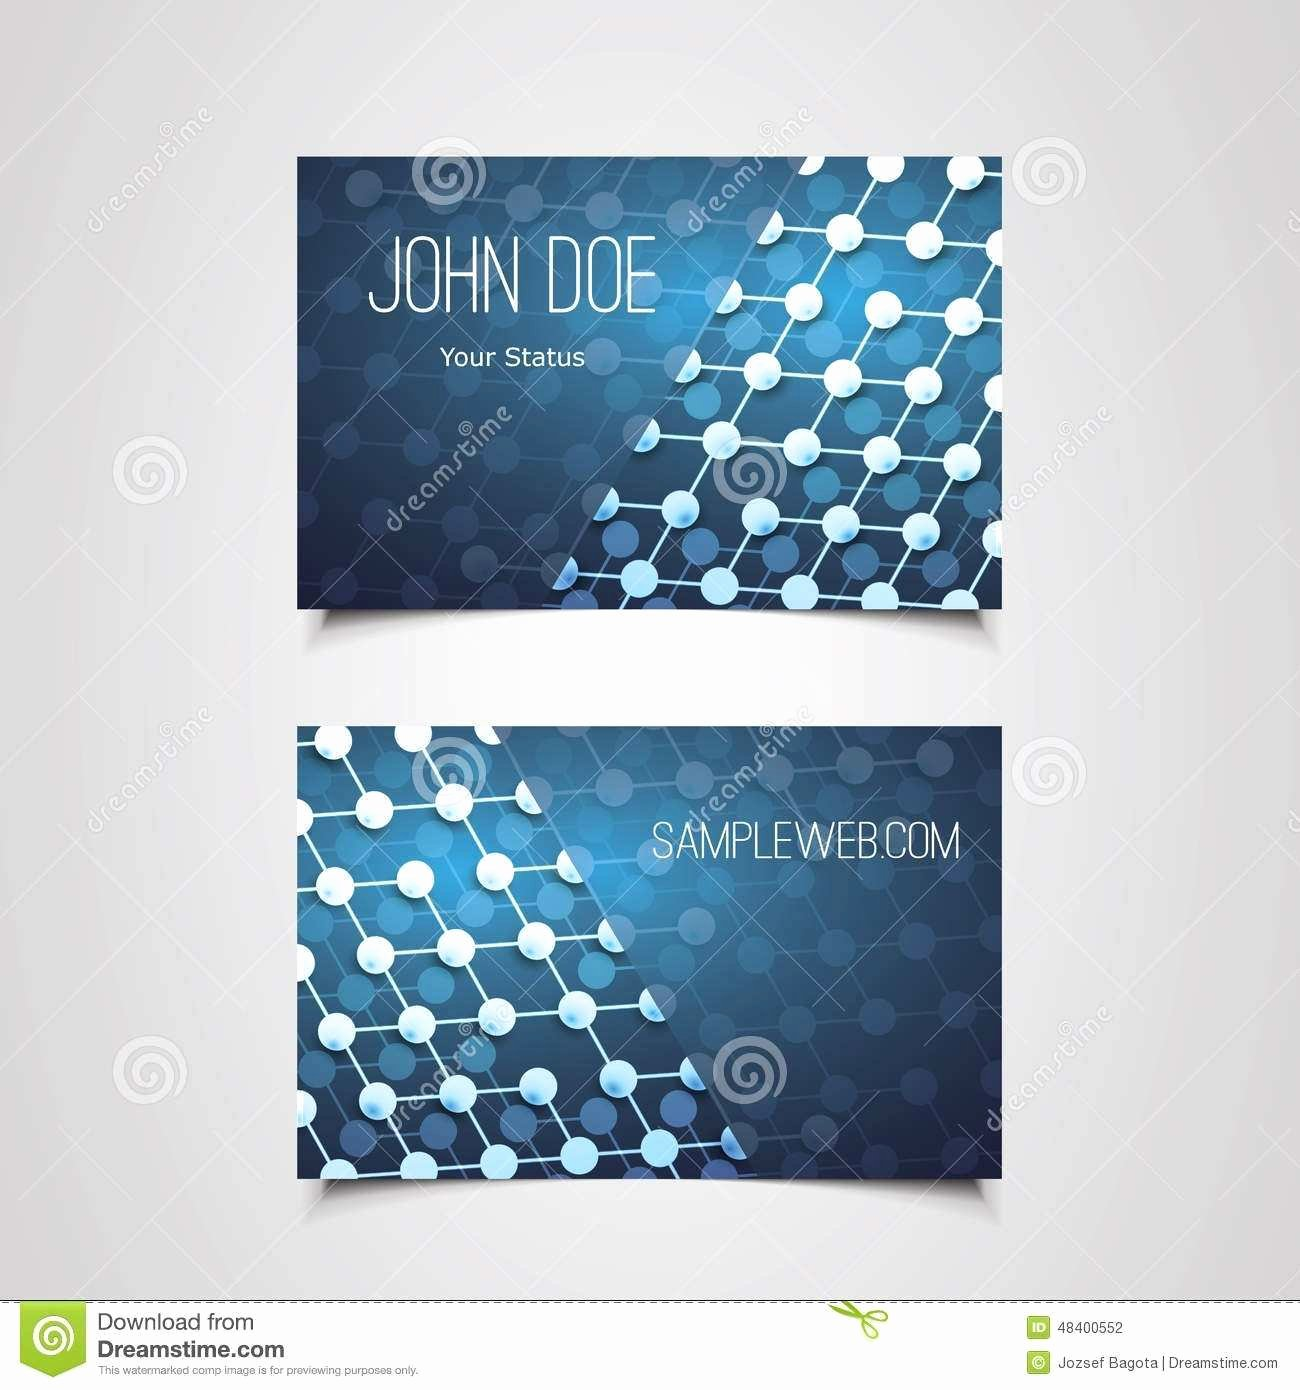 Networking Business Cards Template Elegant New S Networking Business Card Templates